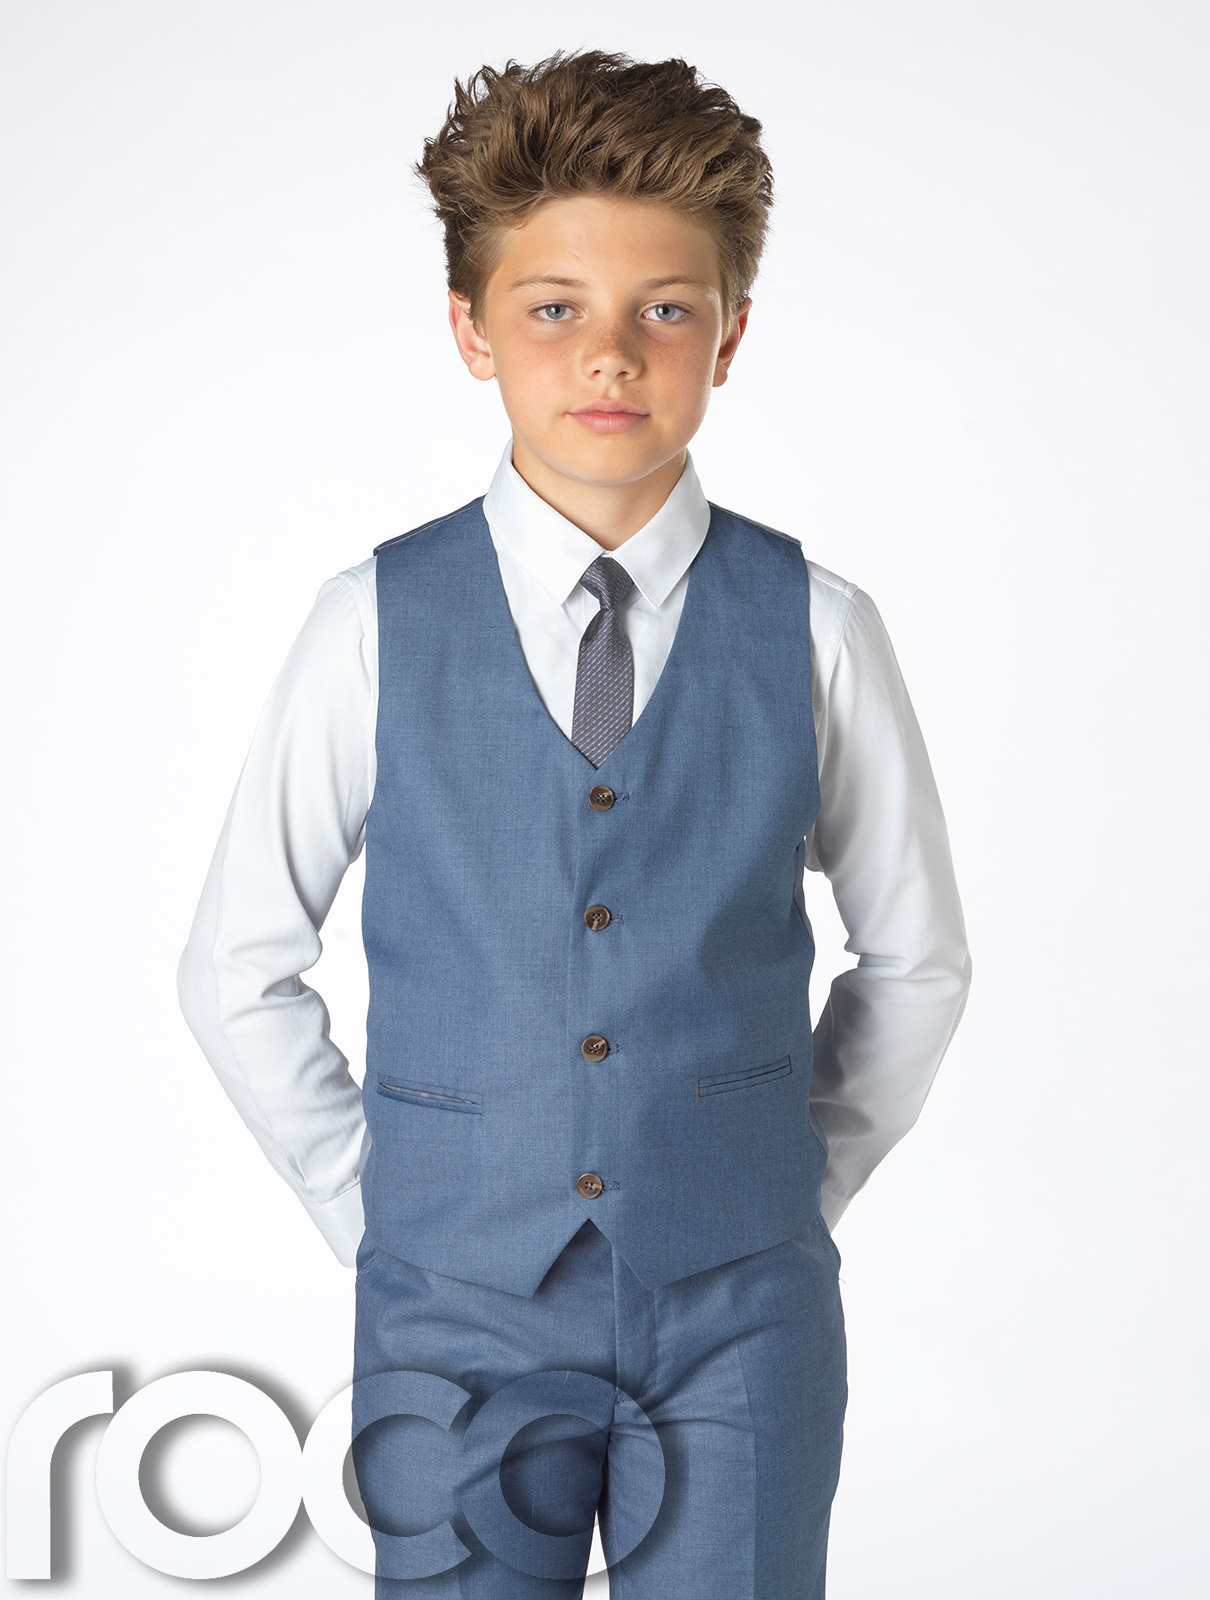 Chambray Blue Suit, Boys Slim Fit Suit, Wedding Suits, Boys Blue ...